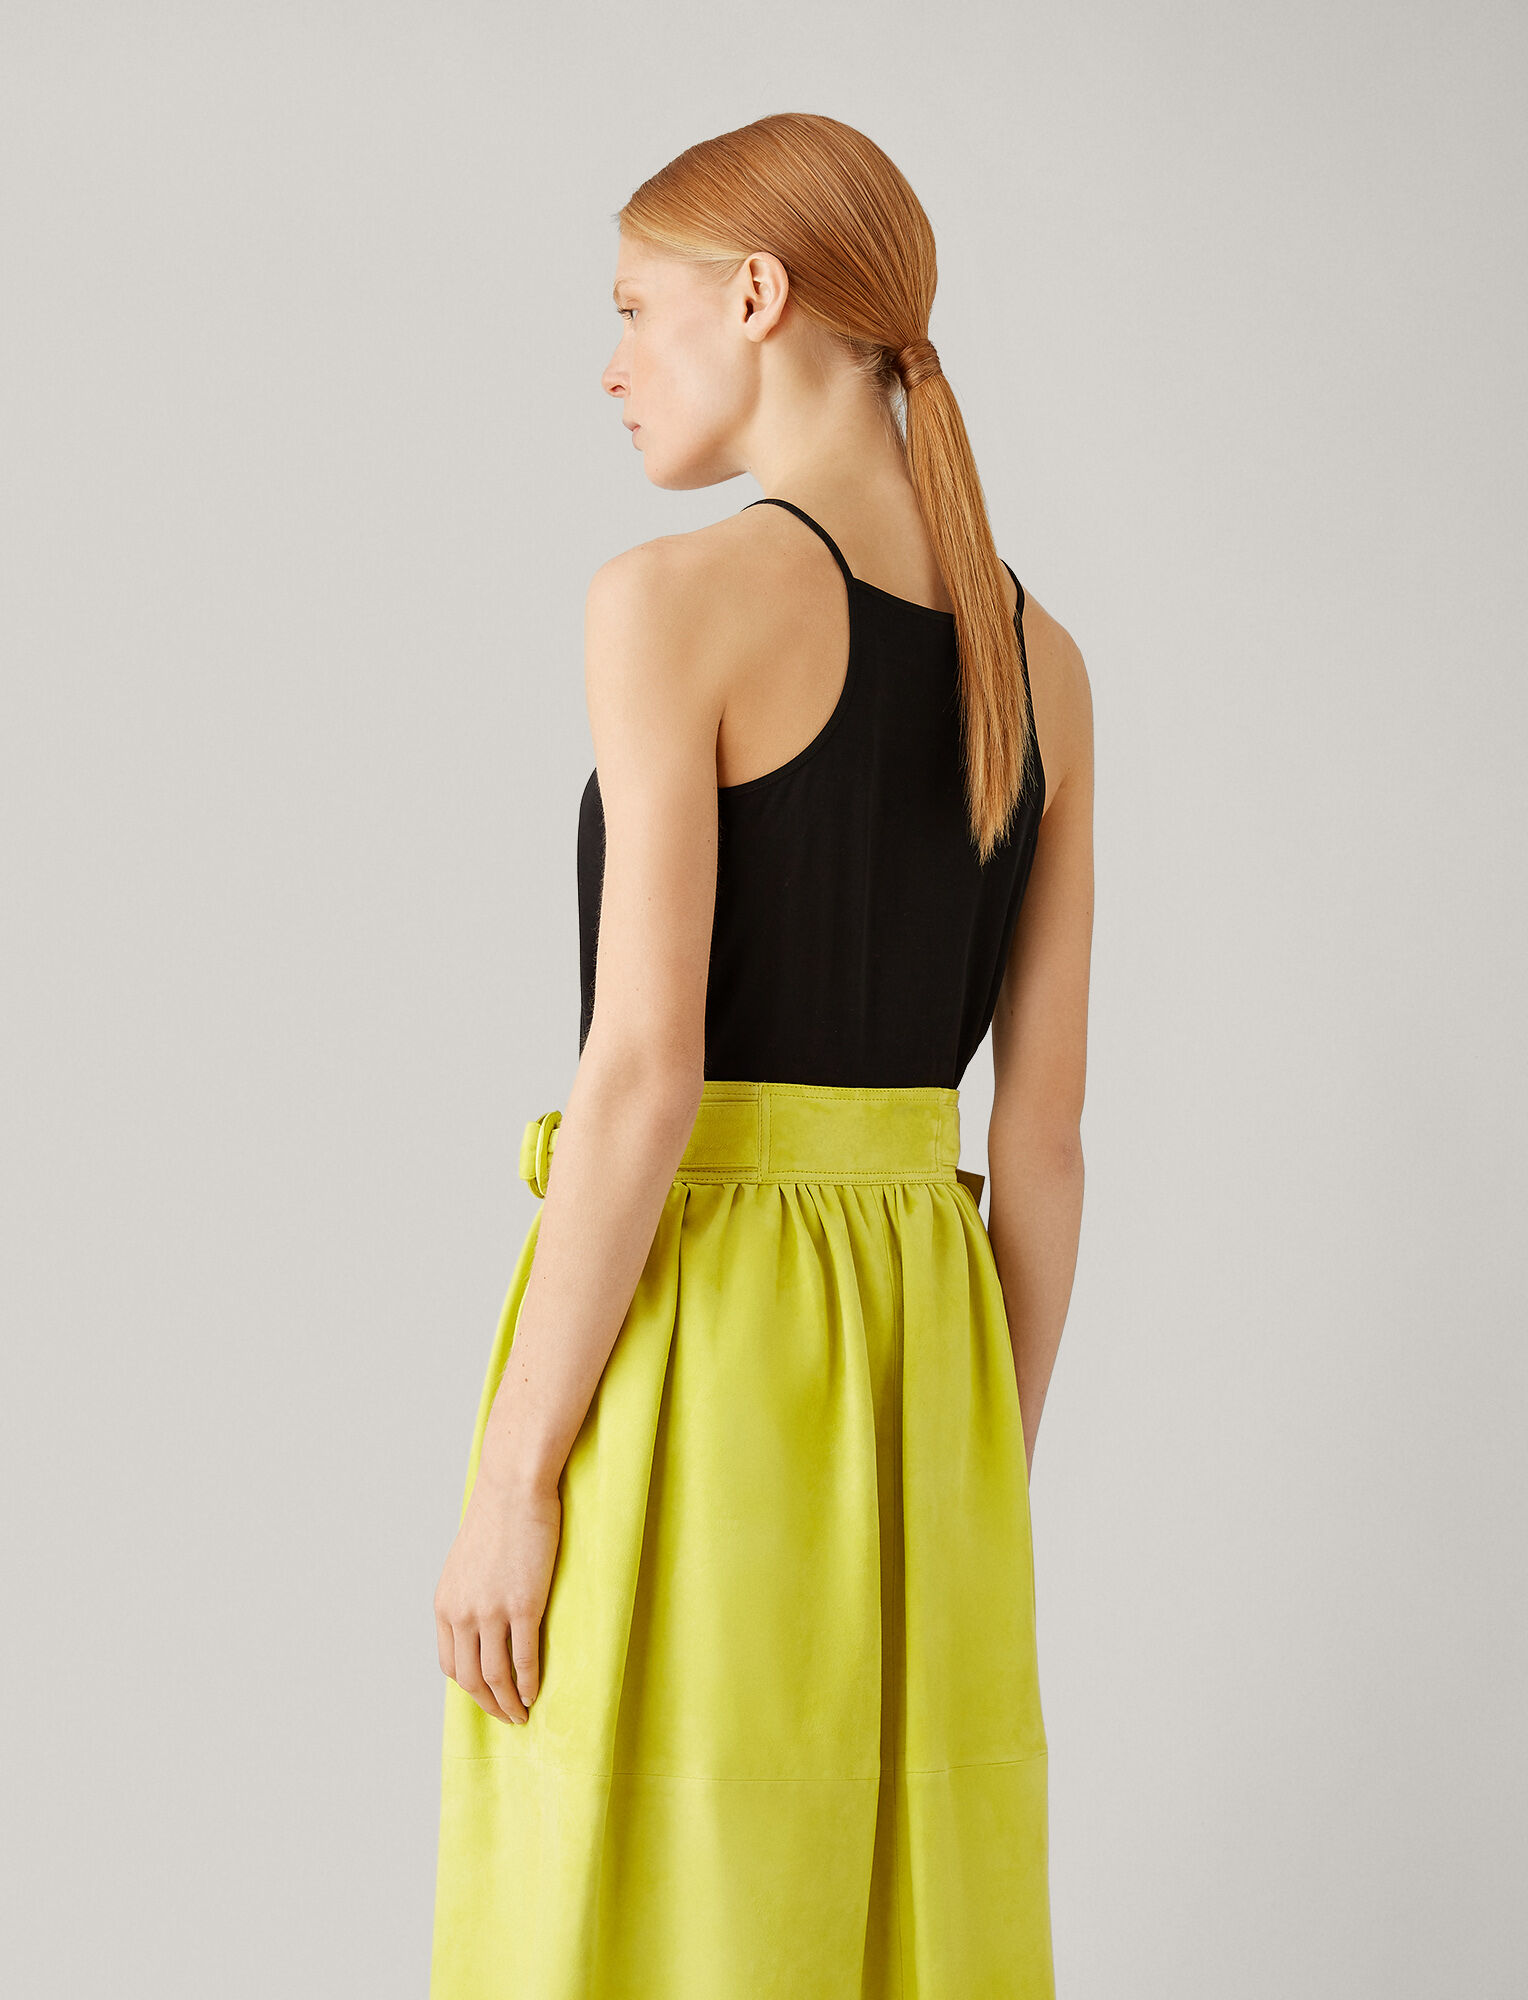 Joseph, Silk Jersey Camisole, in BLACK